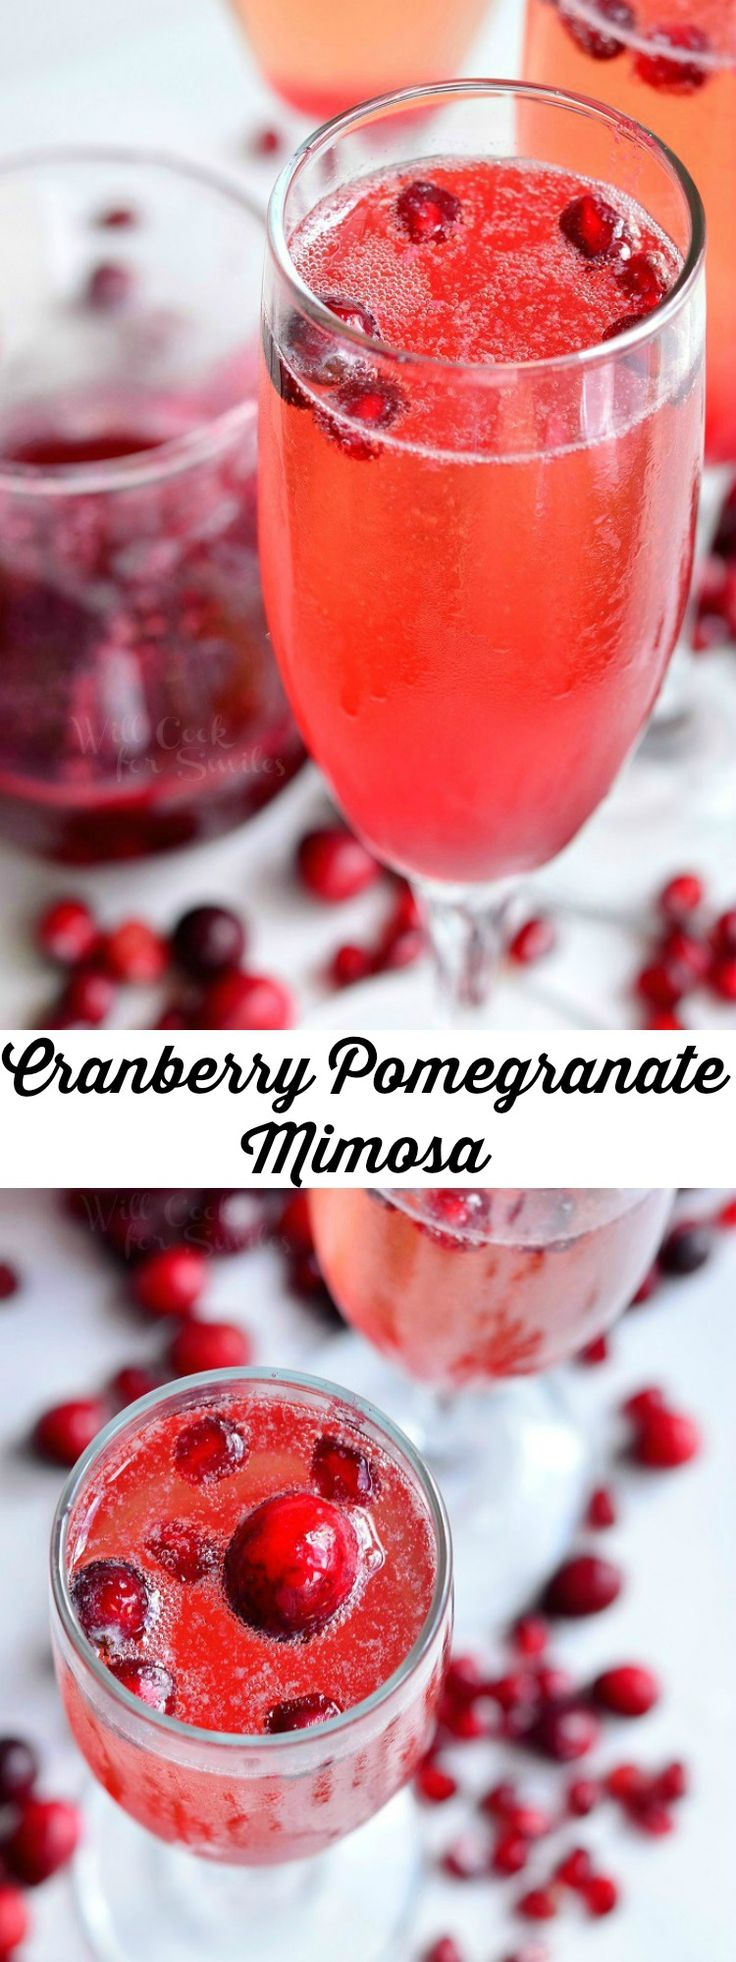 Cranberry champagne wedding - Cranberry Pomegranate Champagne Cocktail